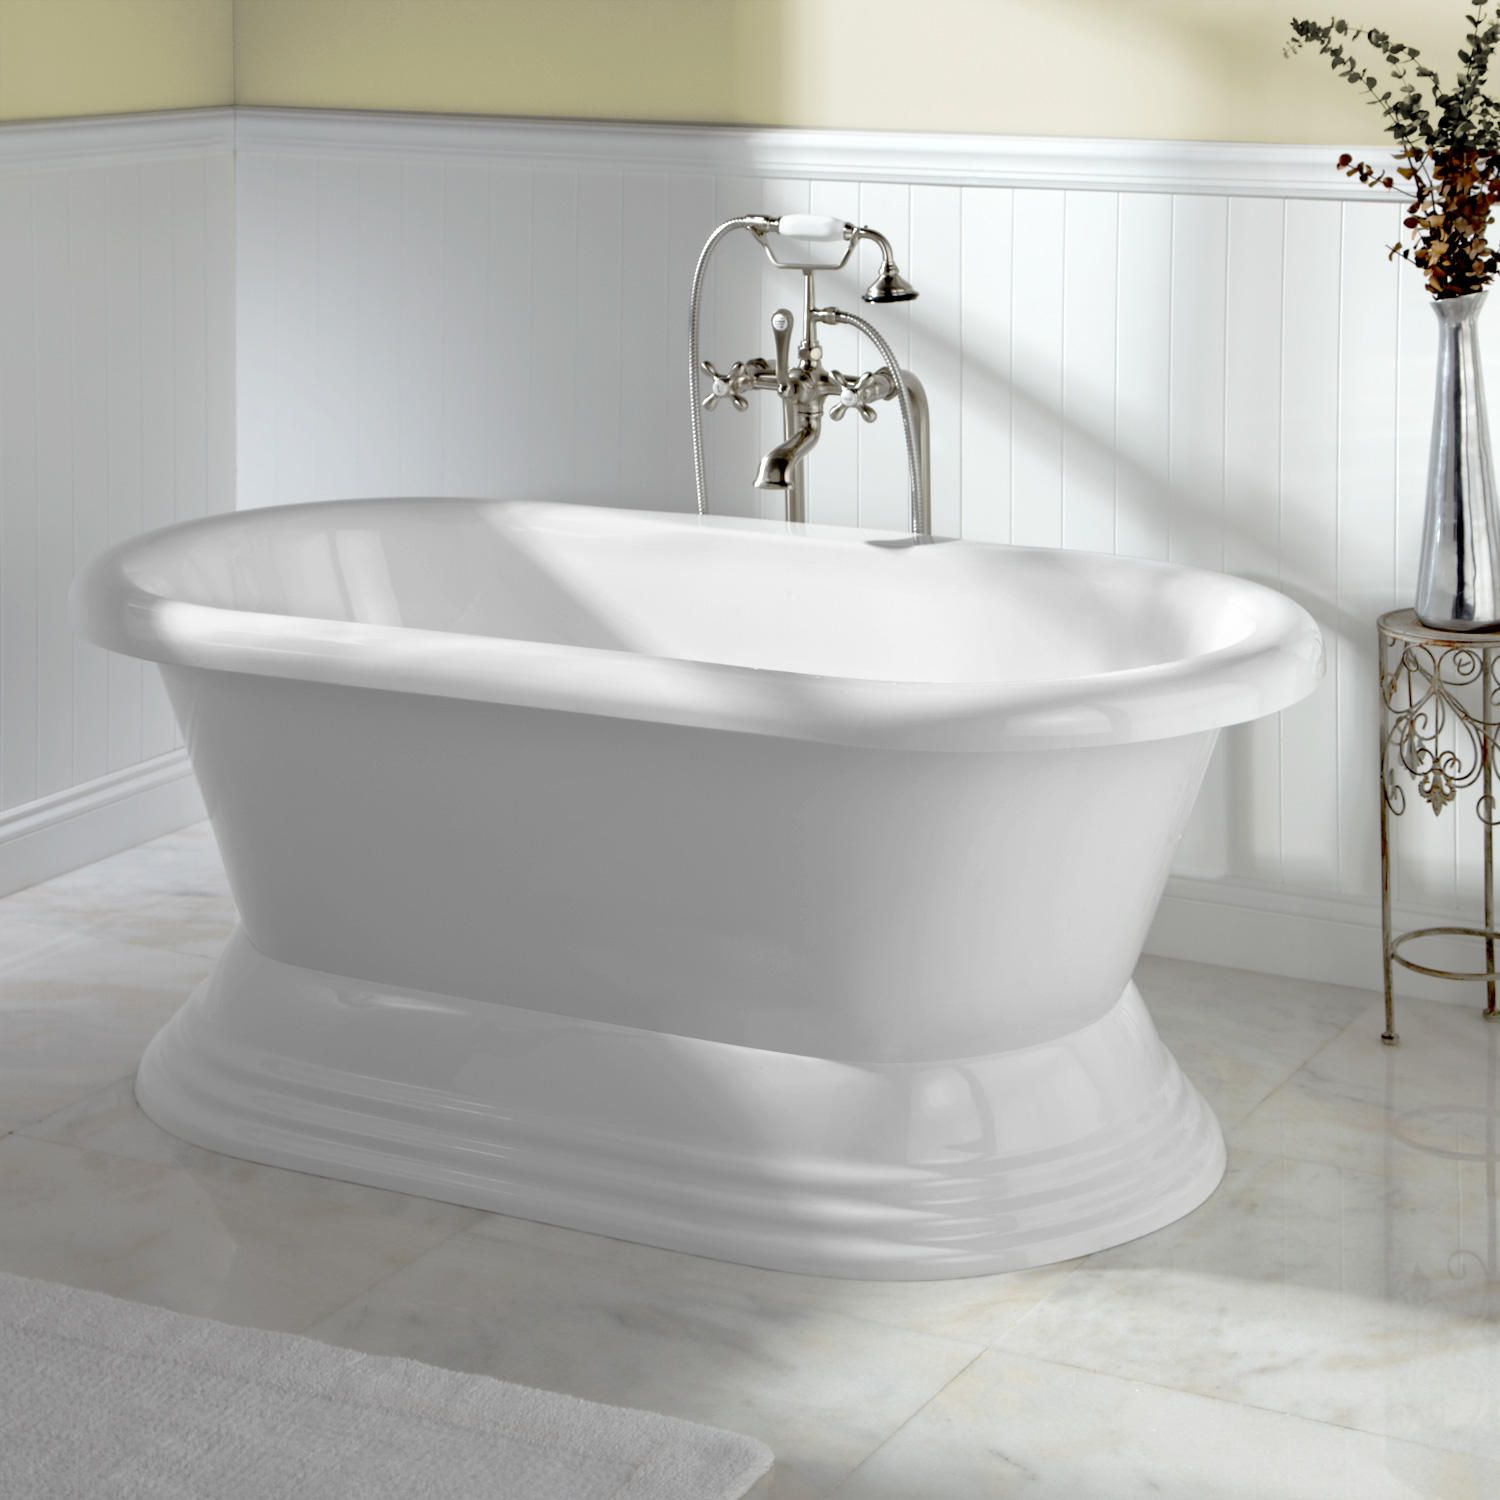 Exciting Stand Alone Tubs for Bathroom Decoration Ideas  Free Standing Bath Freestanding Soaking